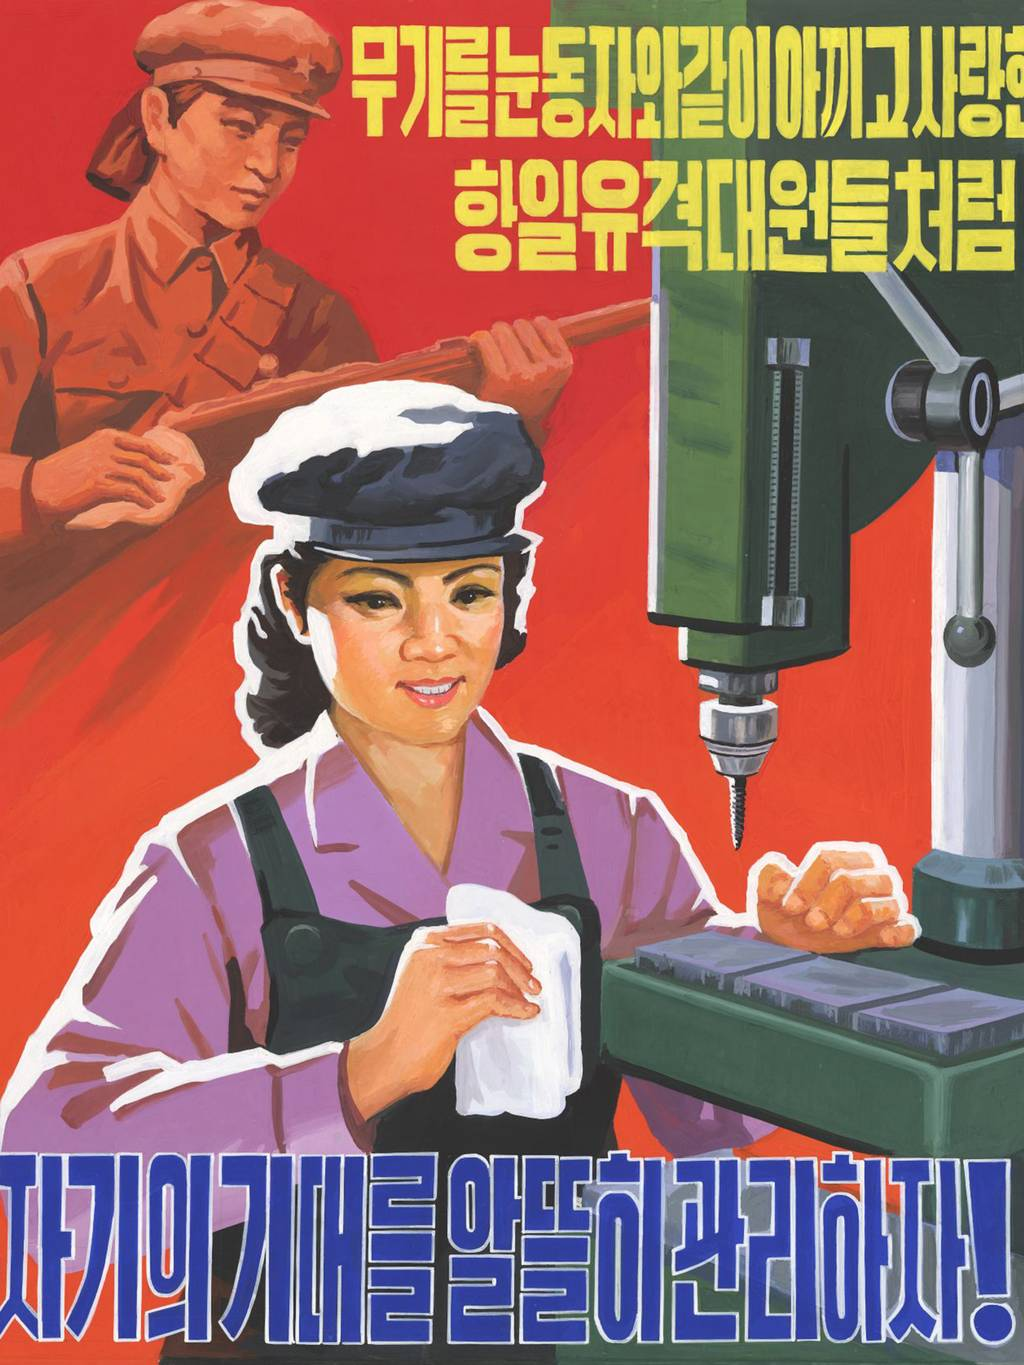 QQJr7BH9Fnk poster 5.jpg Rare North Korea Propoganda Posters Go On Display For First Time